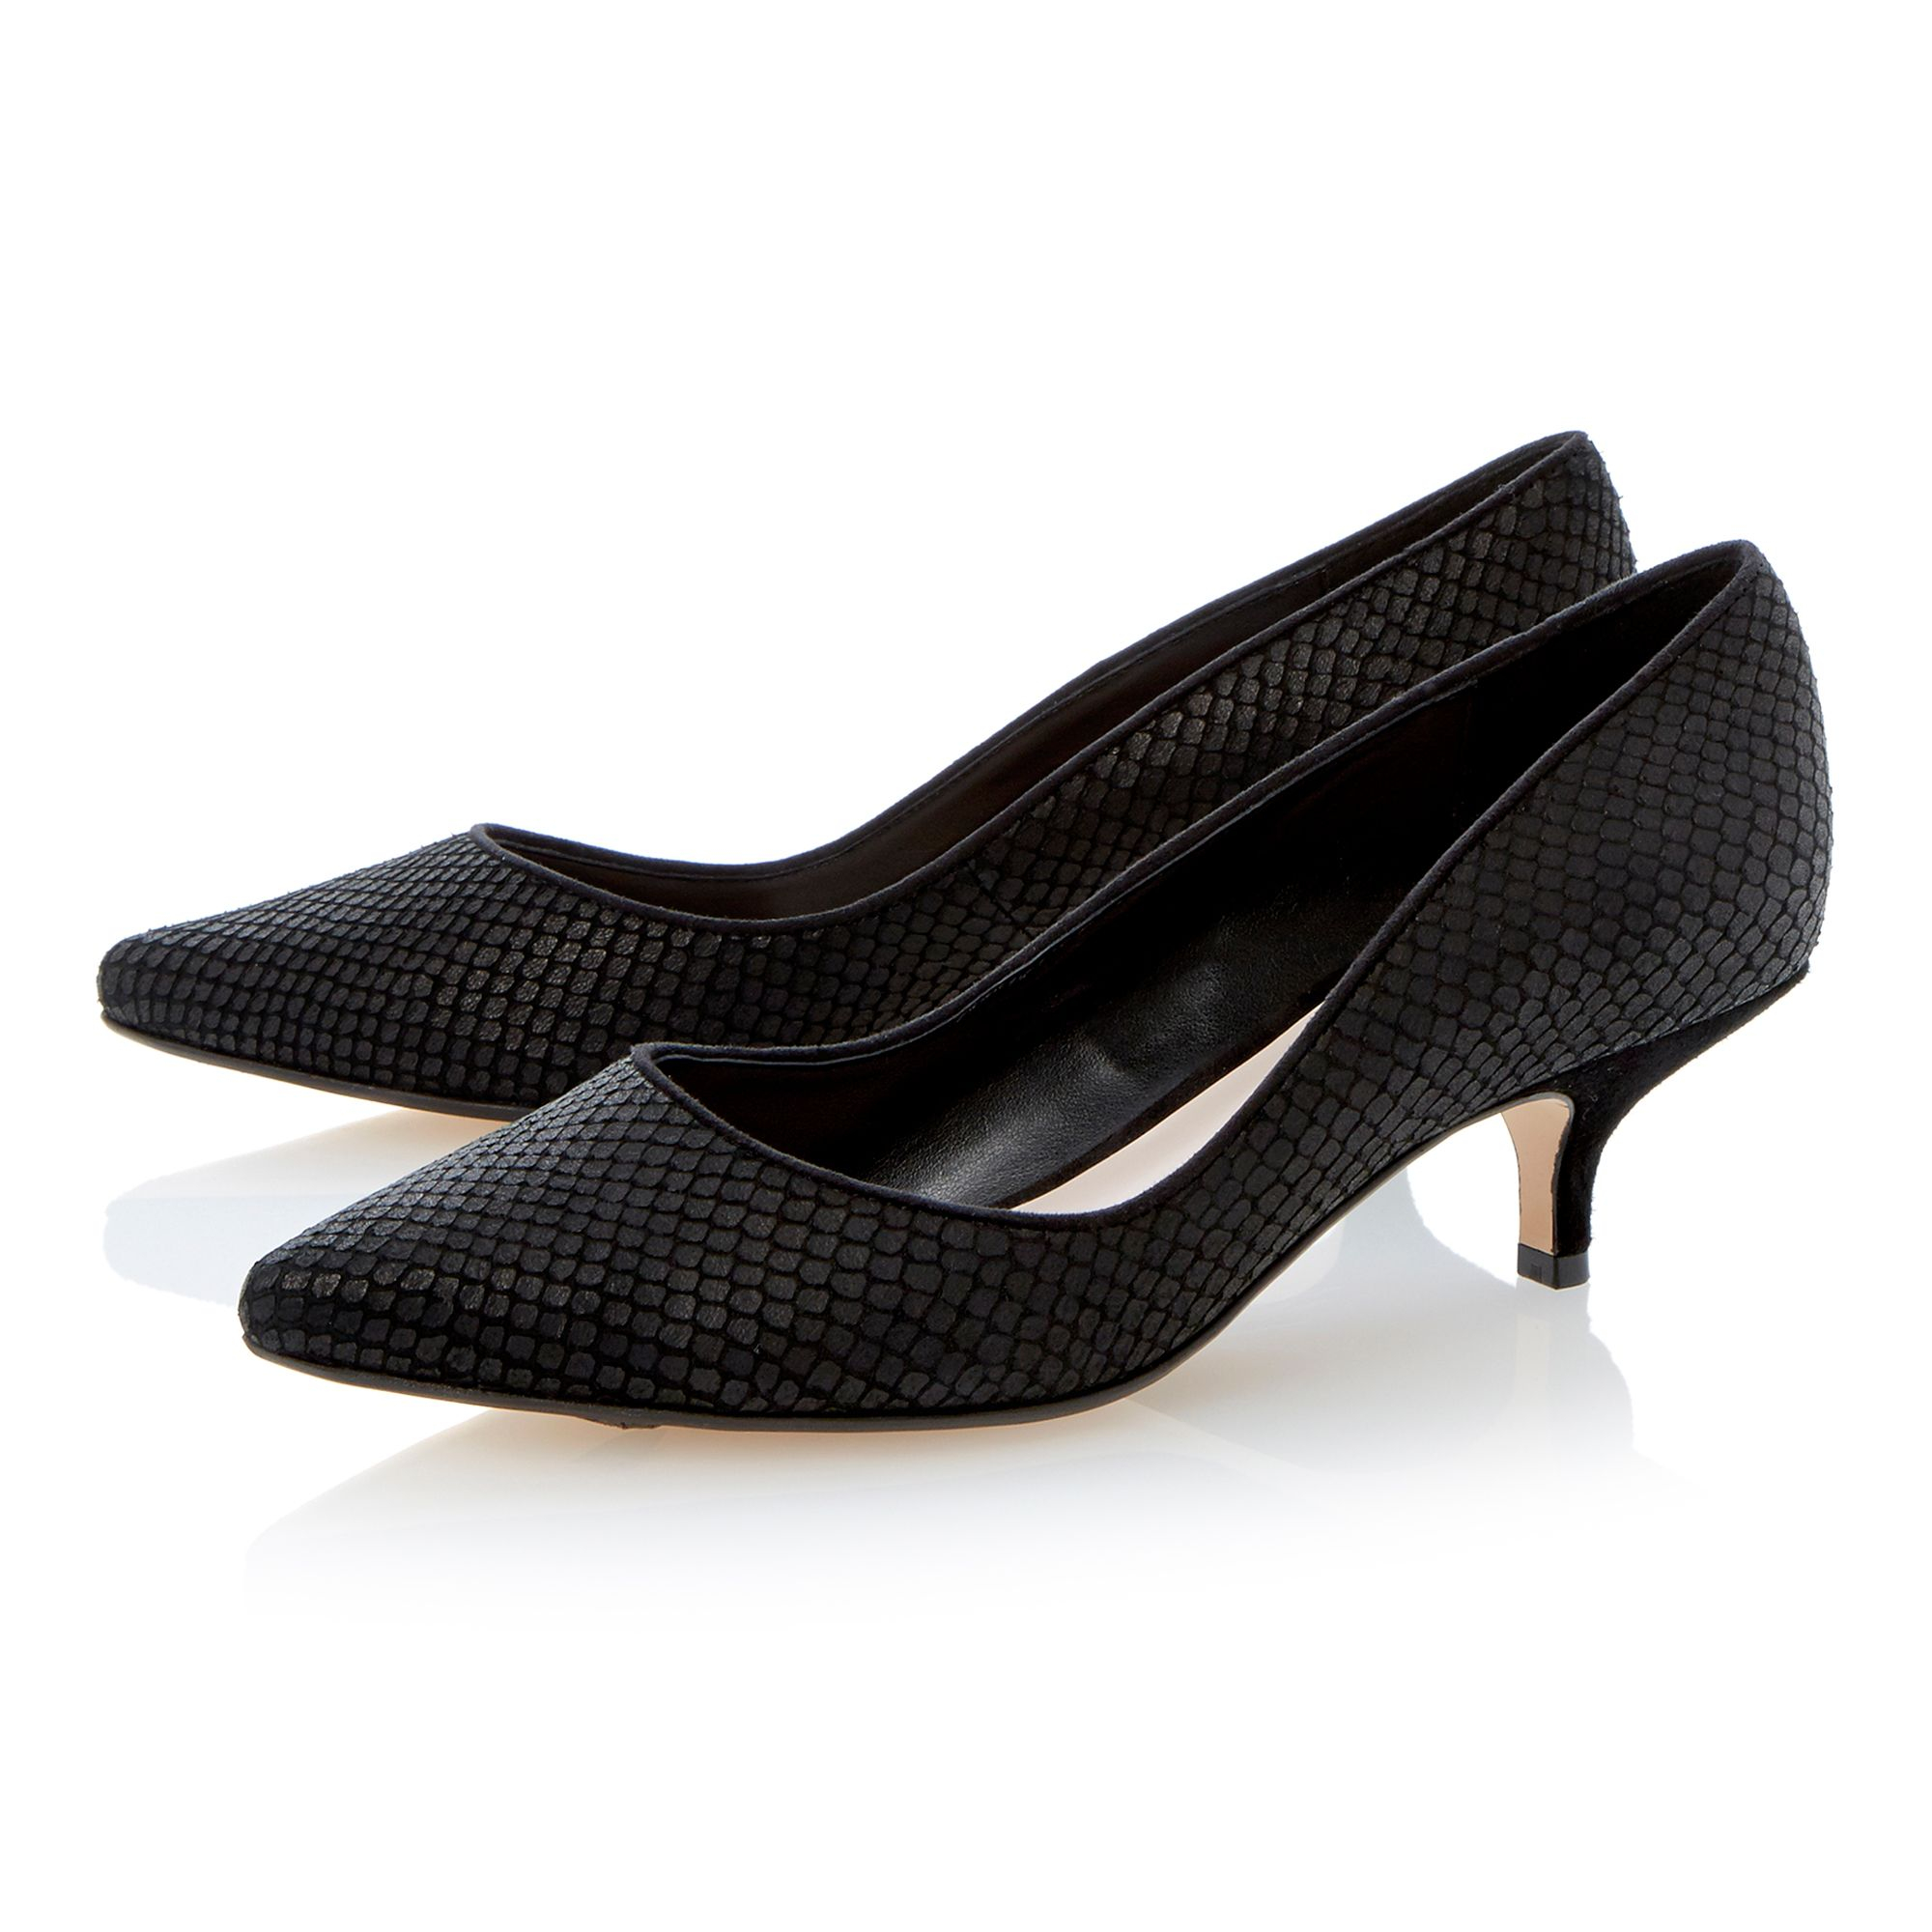 Dune Kitten Heel Shoes